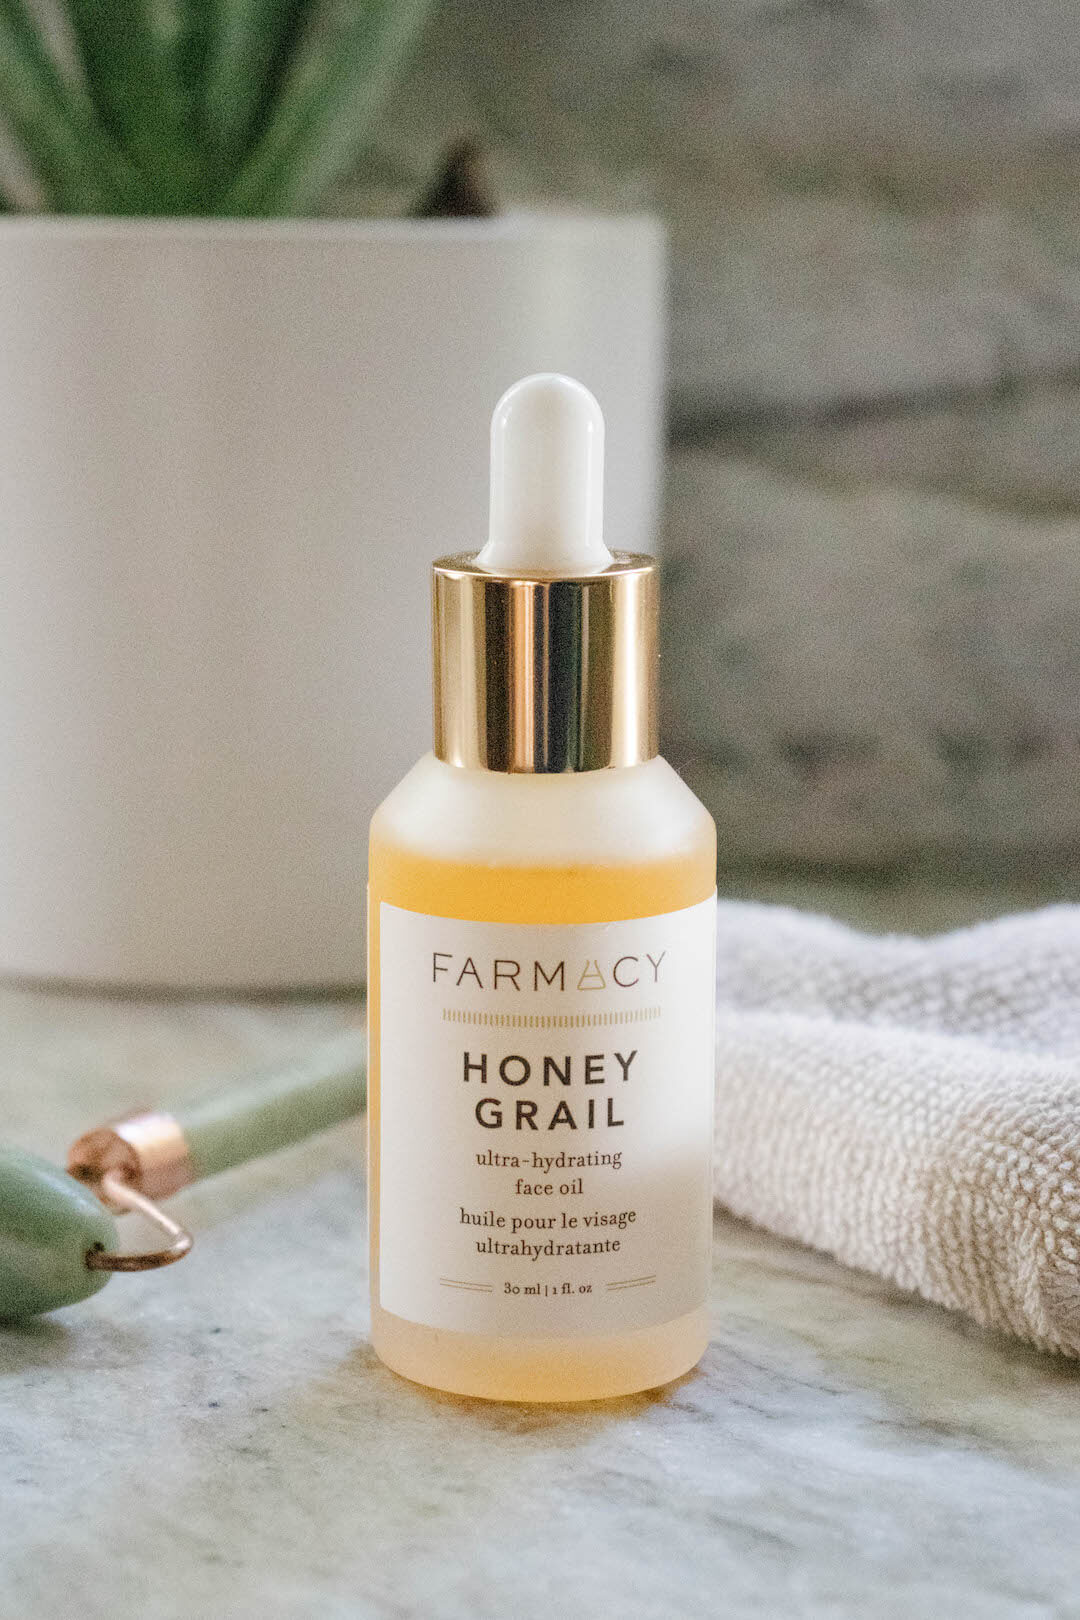 Farmacy Beauty Honey Grail Review